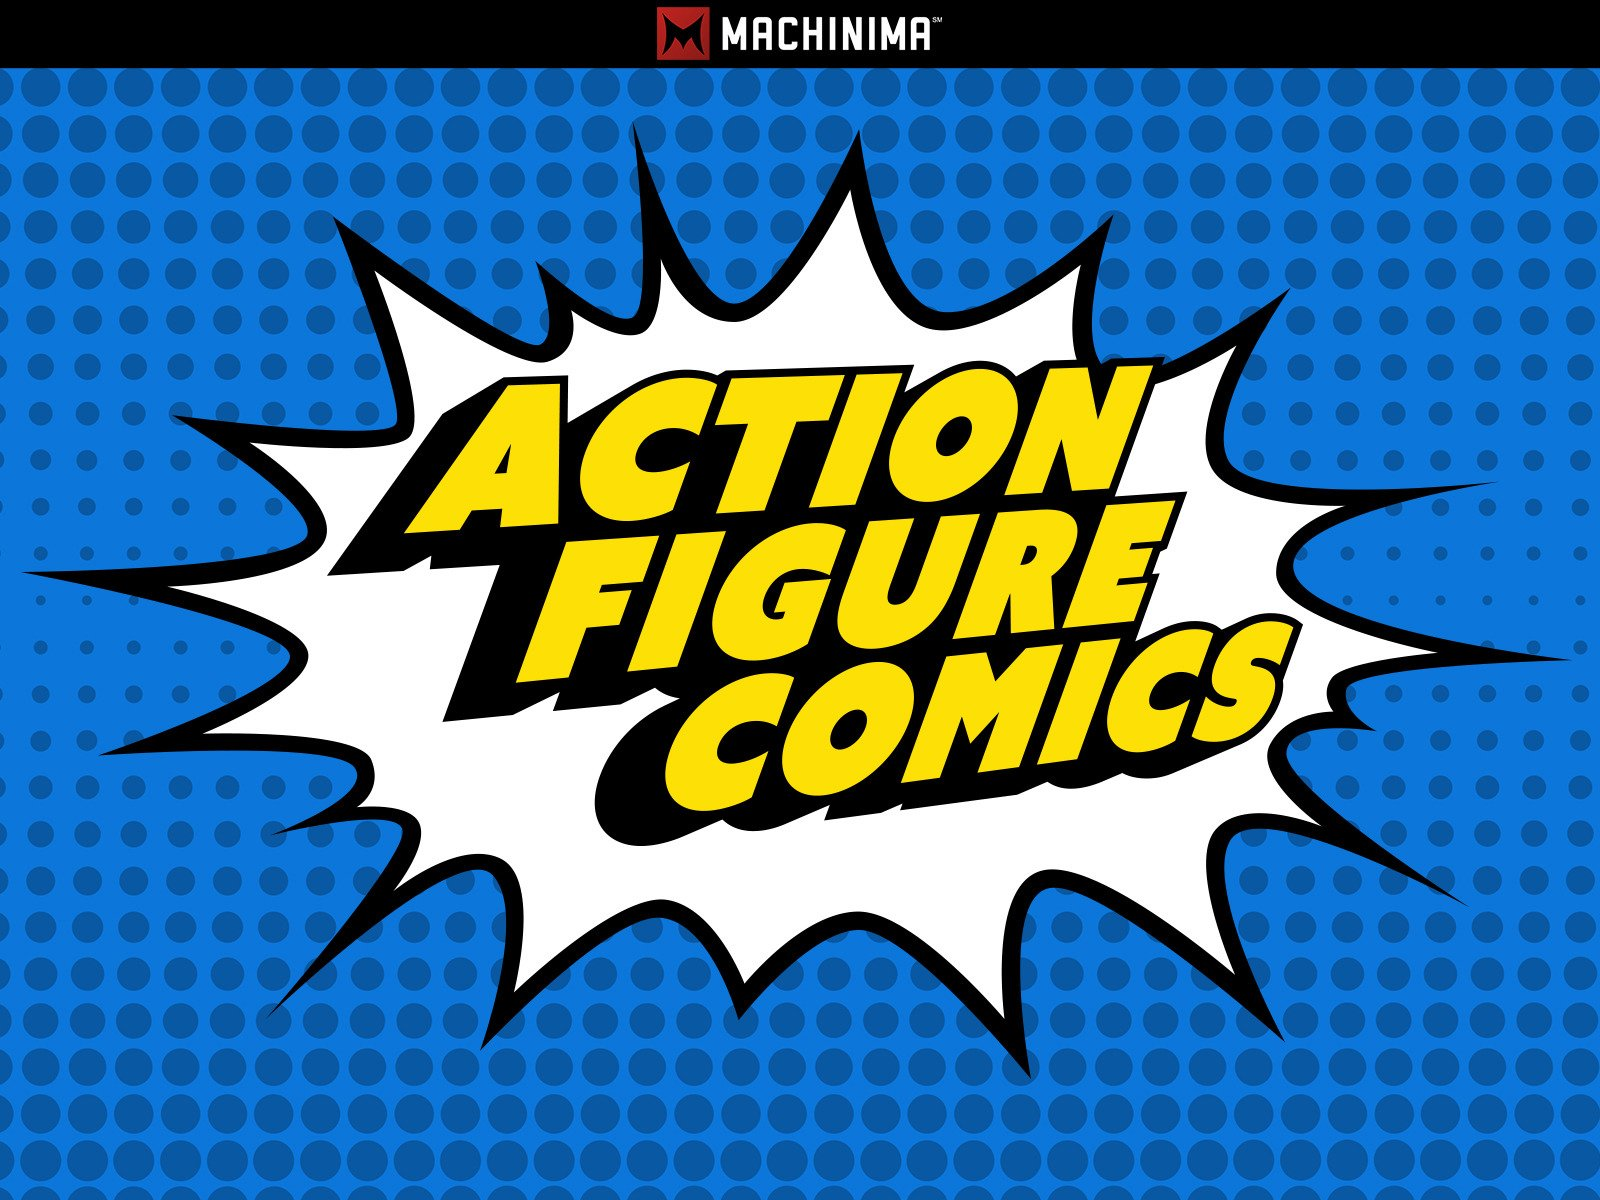 Action Figure Comics